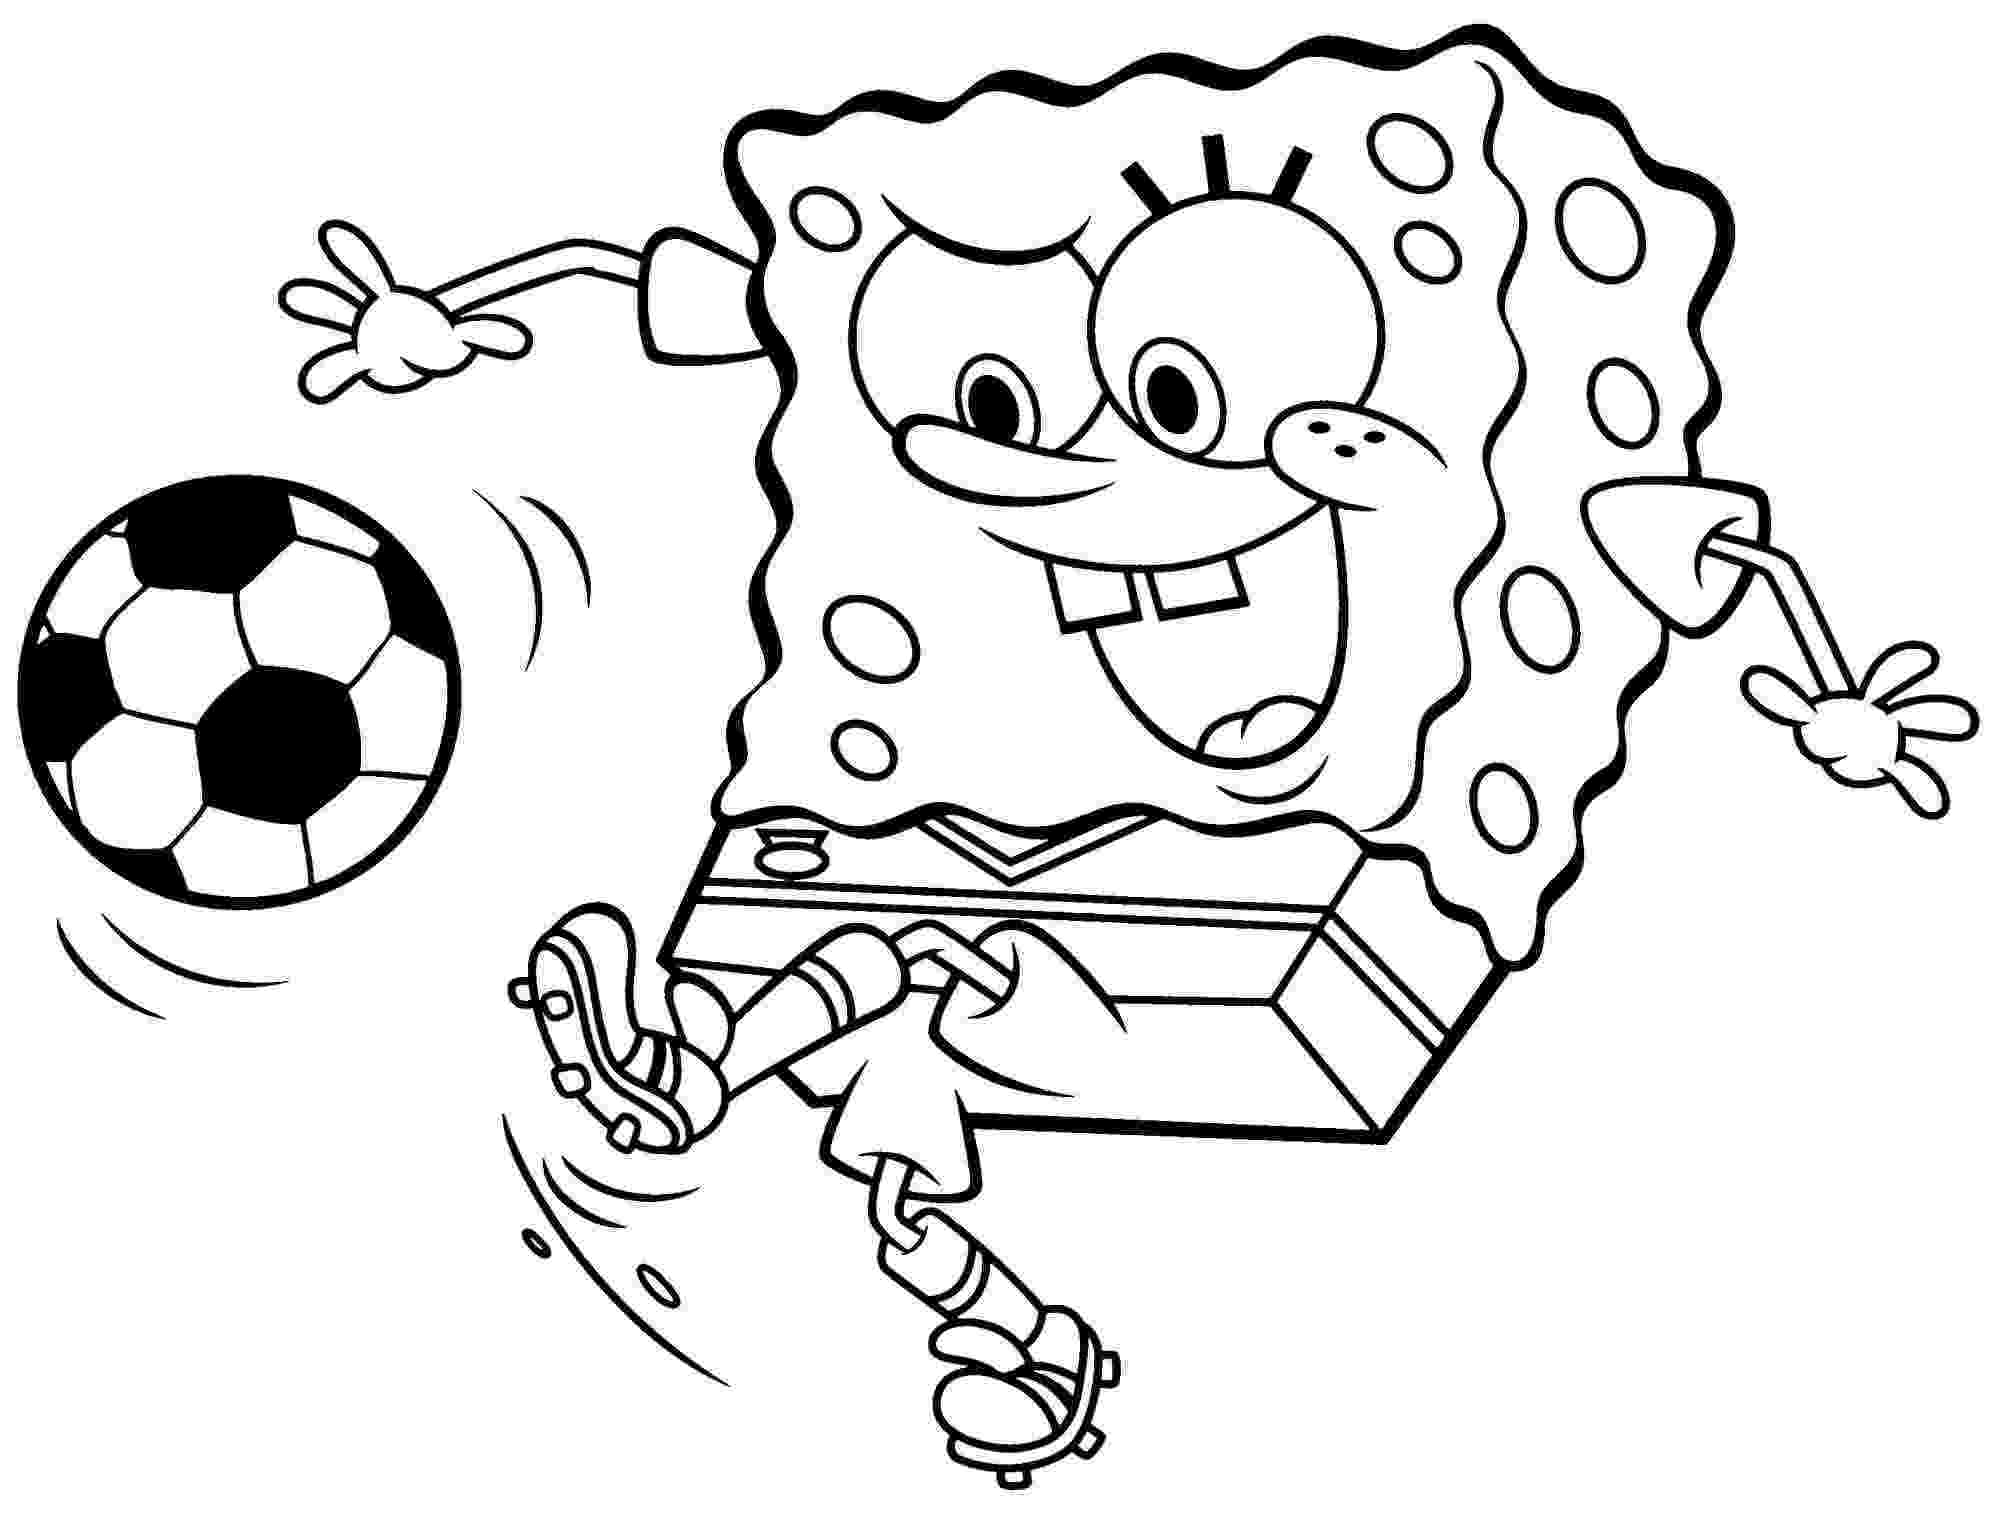 spongebob coloring pages for kids coloring pages spongebob spongebob coloring spongebob coloring kids spongebob for pages